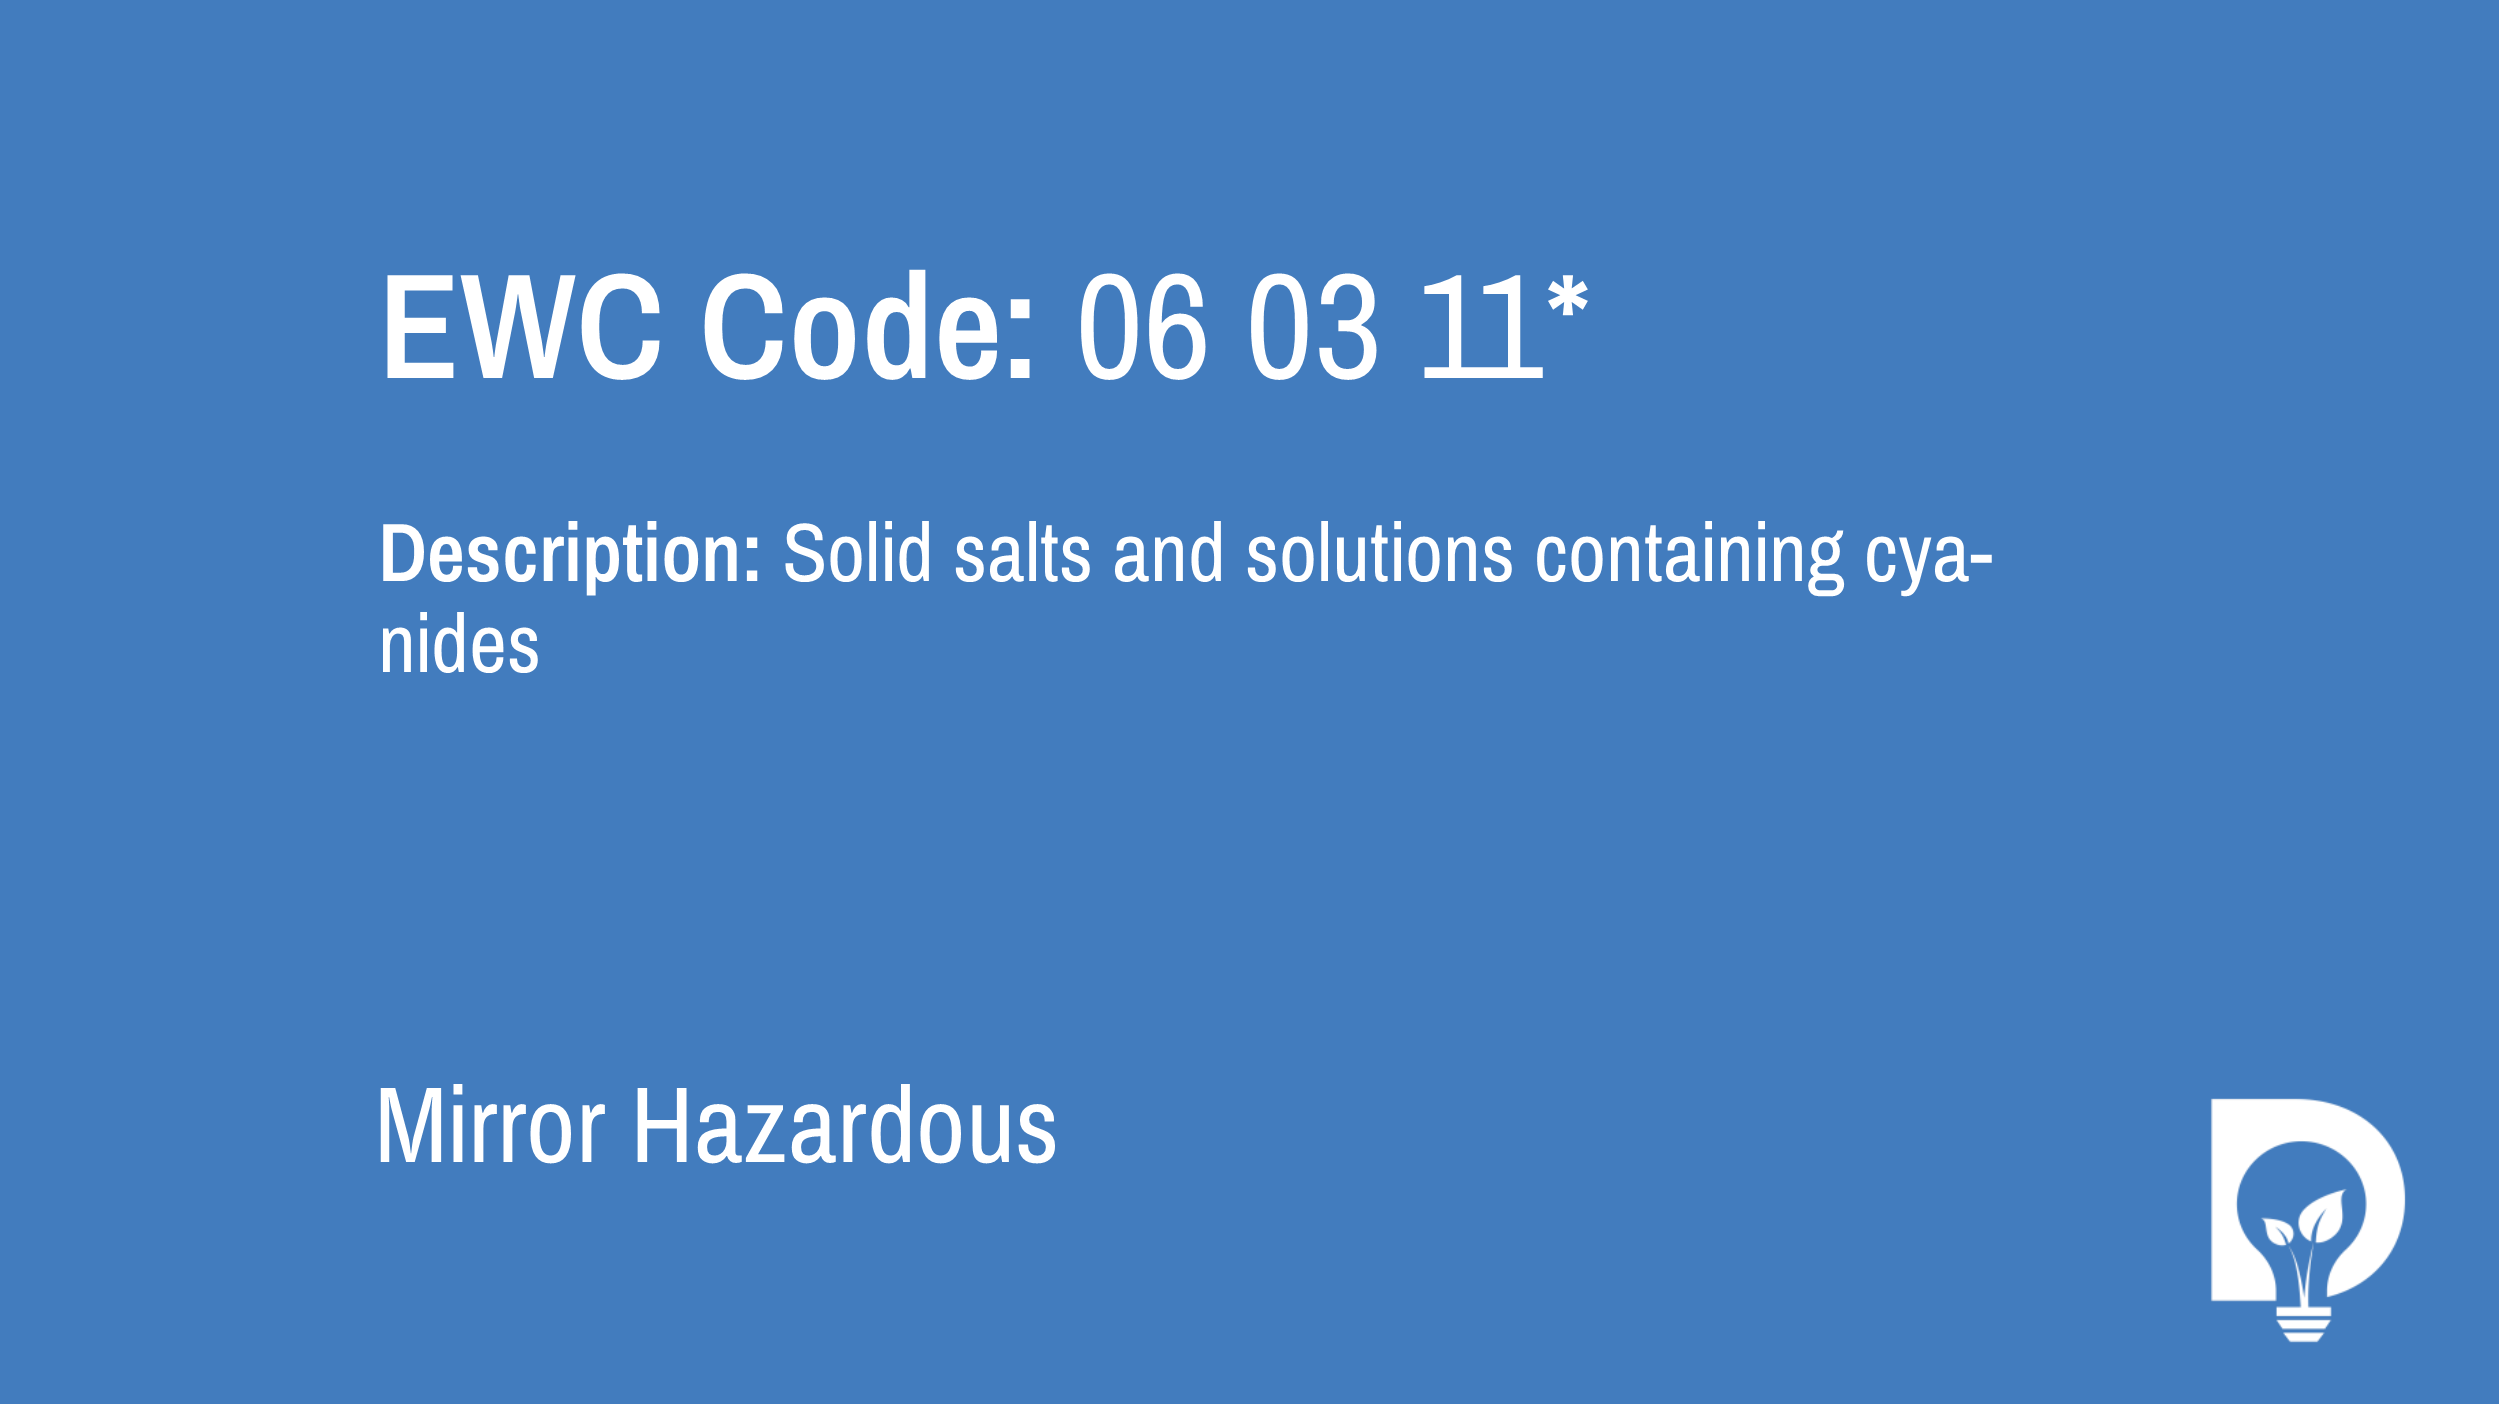 EWC Code: 06 03 11* - solid salts and solutions containing cyanides. Type: Mirror Hazardous. Image by Dsposal